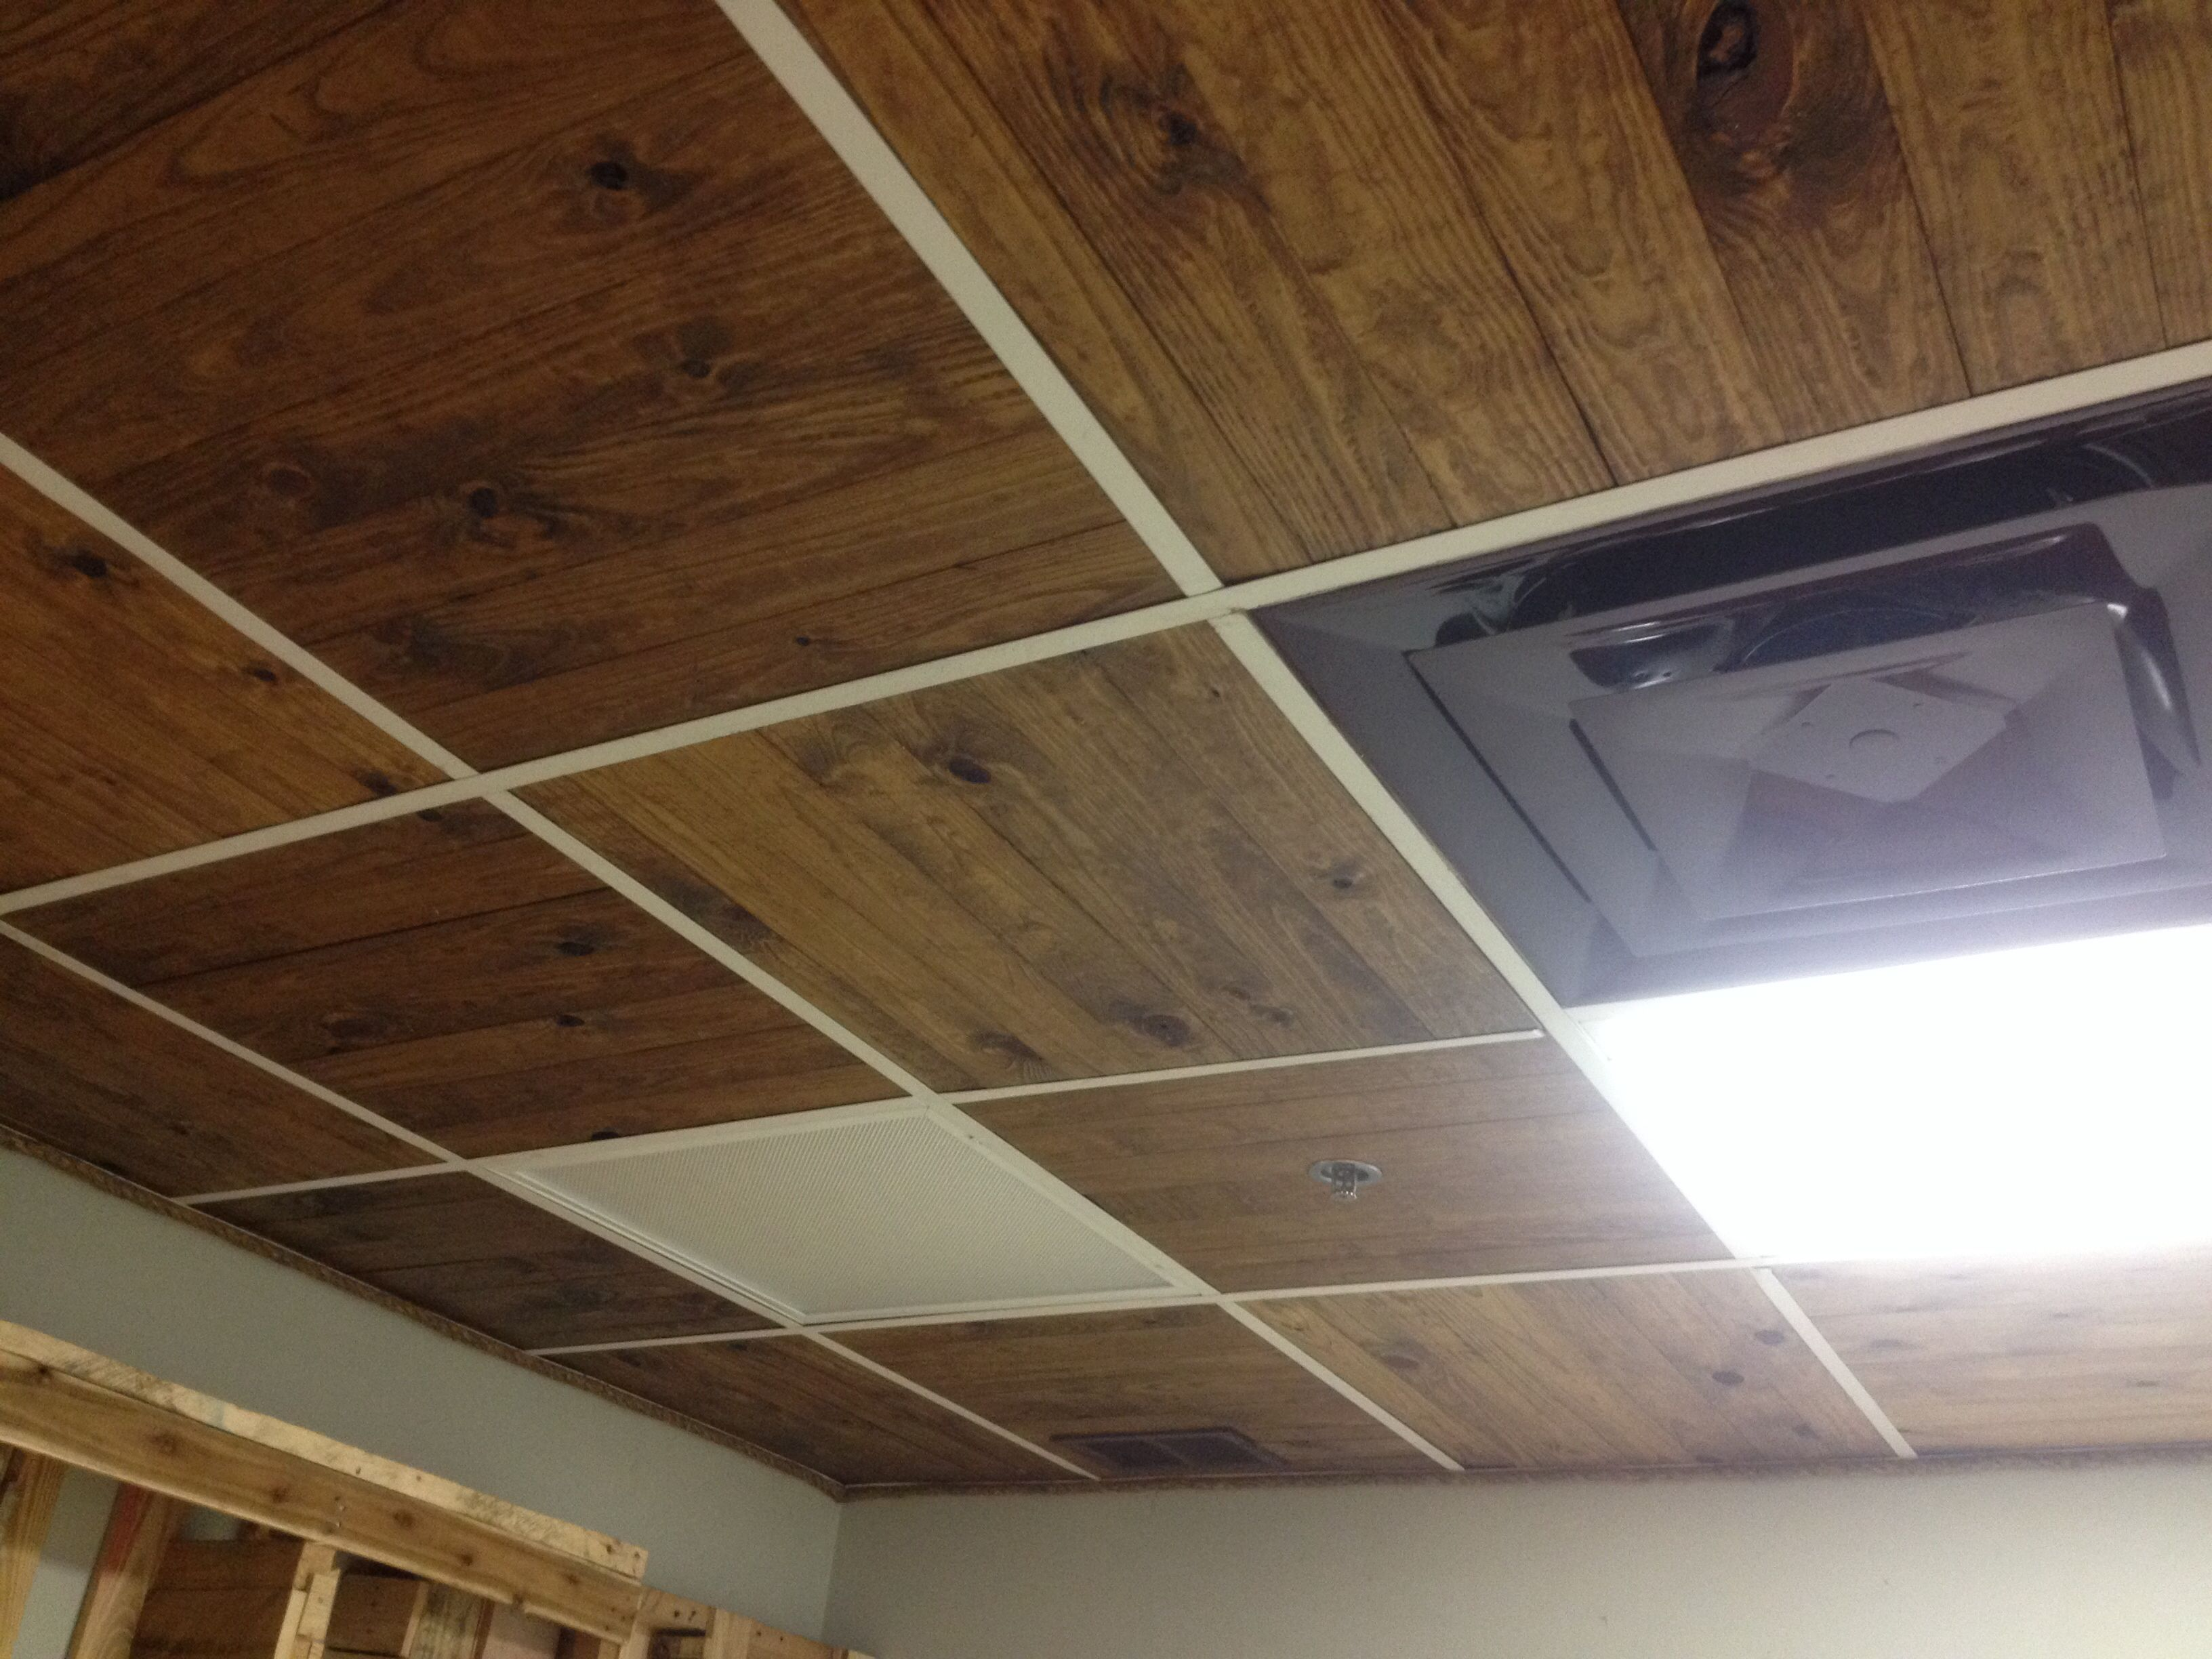 Wooden slats replace ceiling tile but paint hangers black and run wooden slats replace ceiling tile but paint hangers black and run grain same way dailygadgetfo Image collections